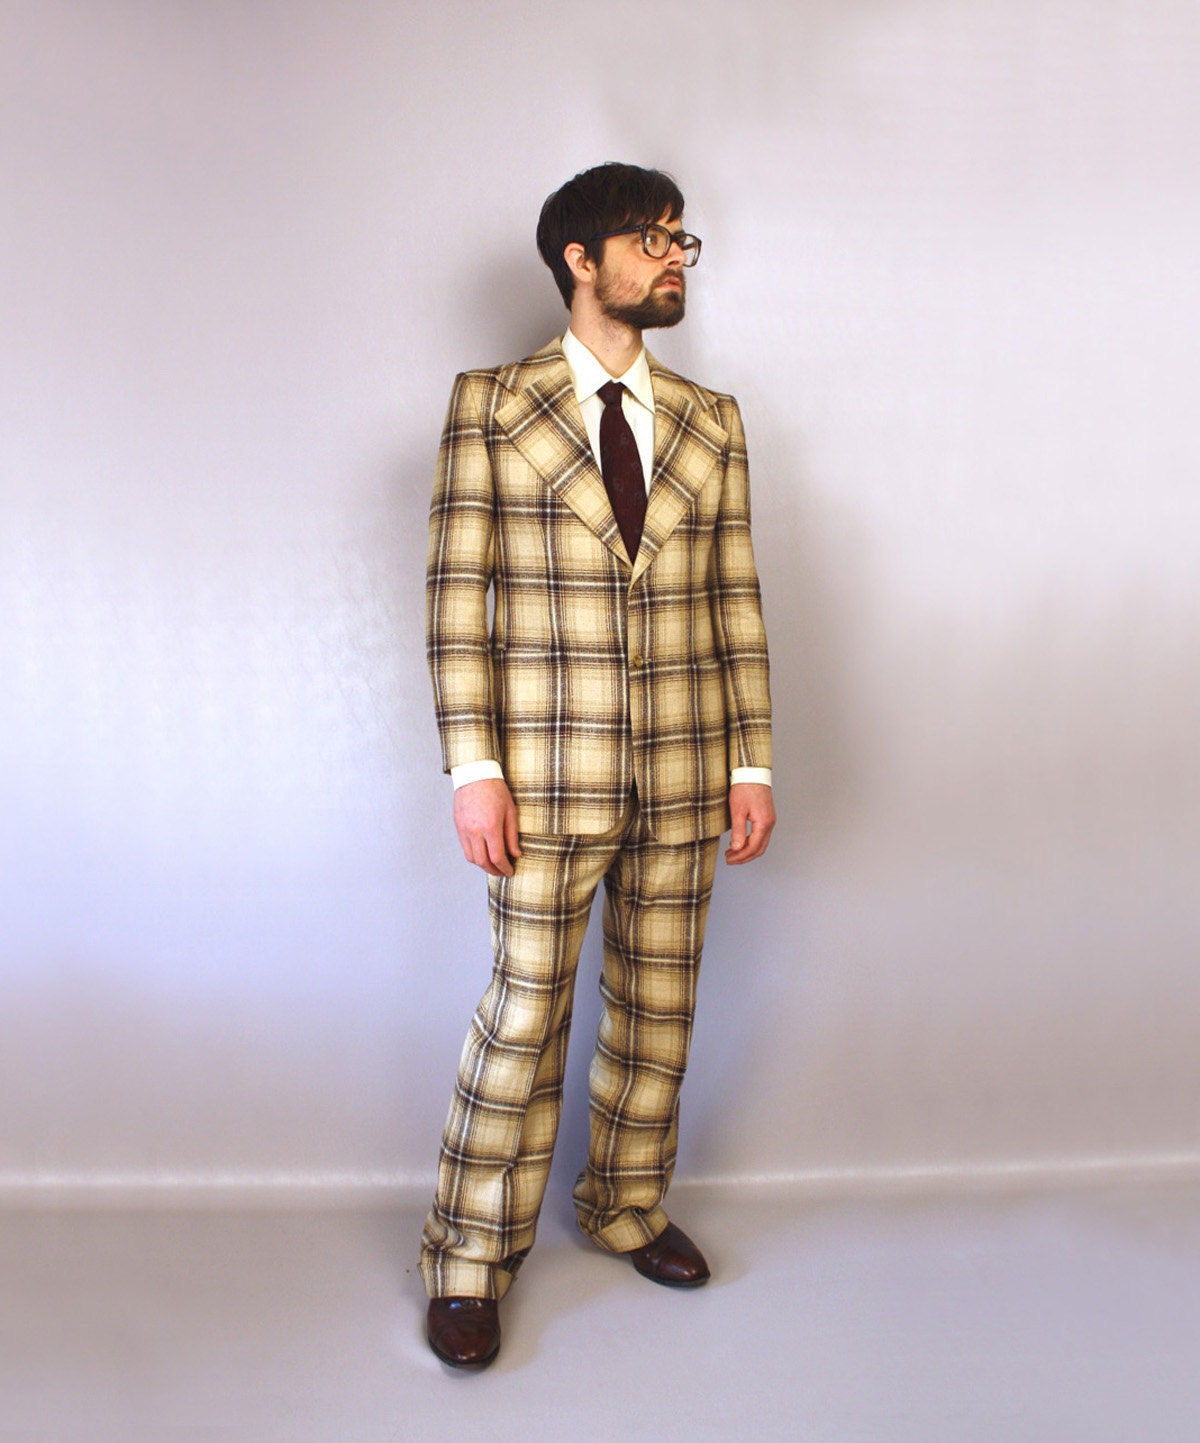 1970s mens suit // designer plaid suit // Pierre Cardin suit